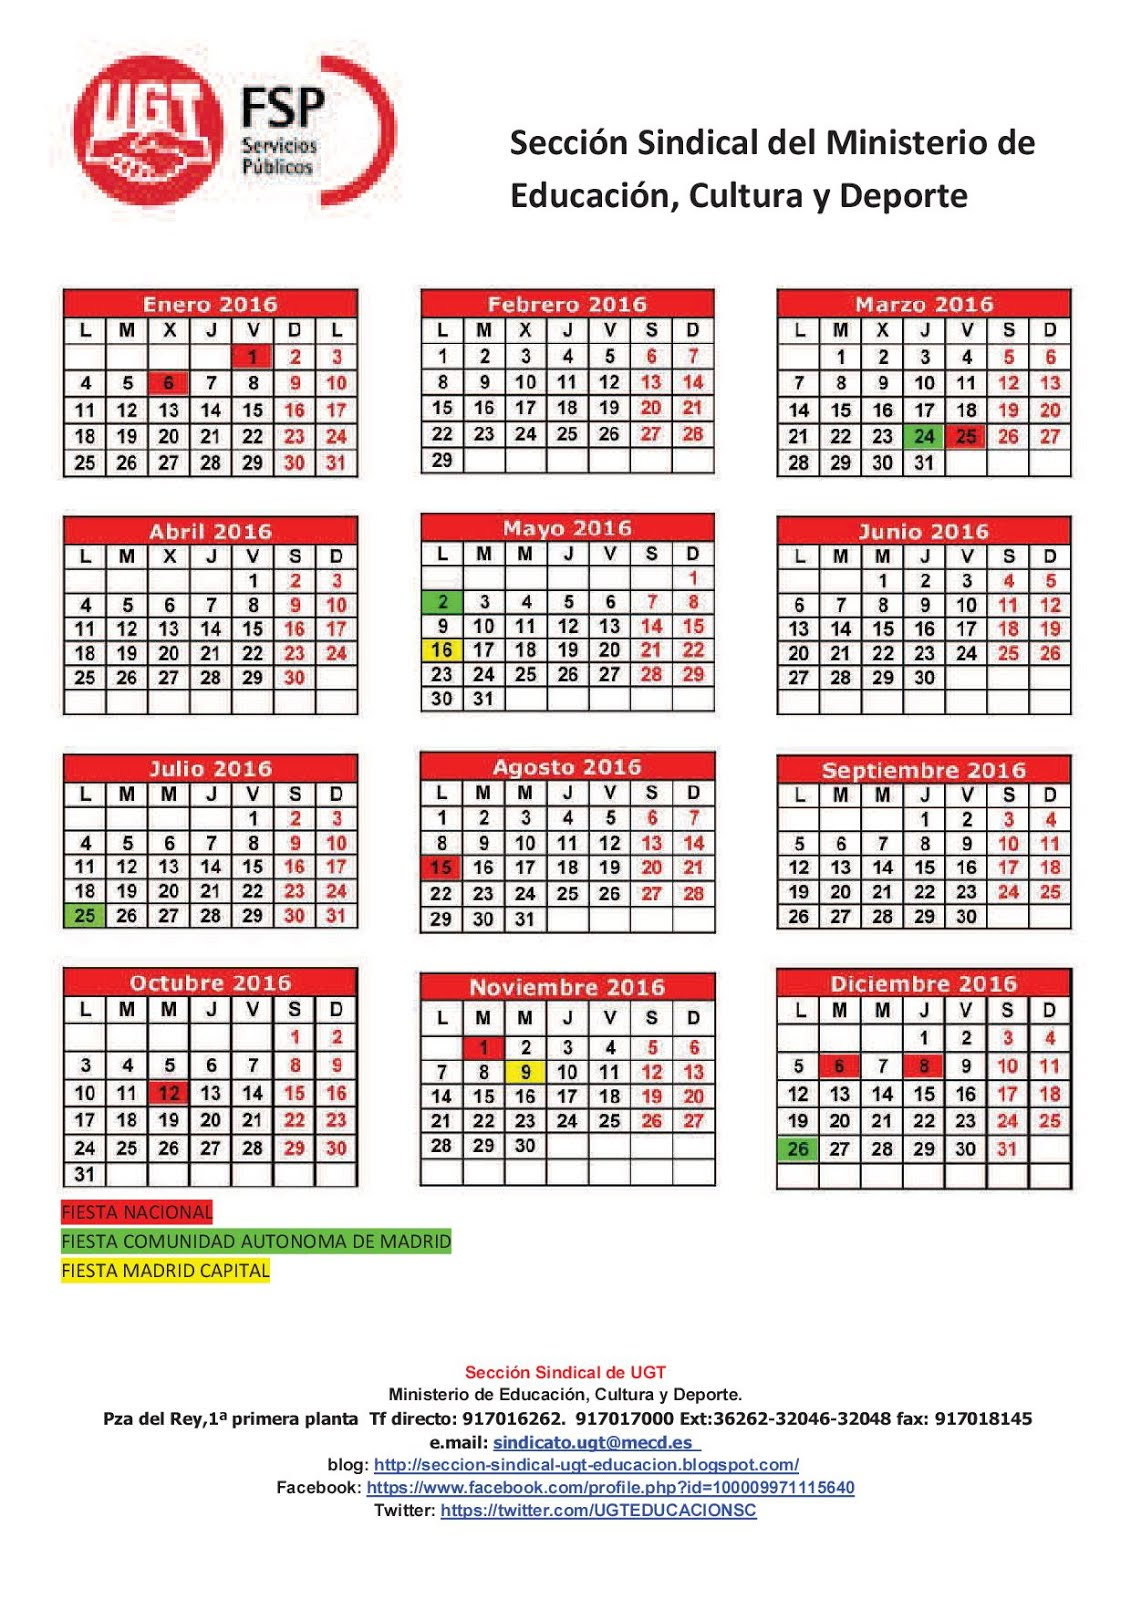 Seccion sindical ugt educacion calendario fiestas 2016 en for Calendario eventos madrid